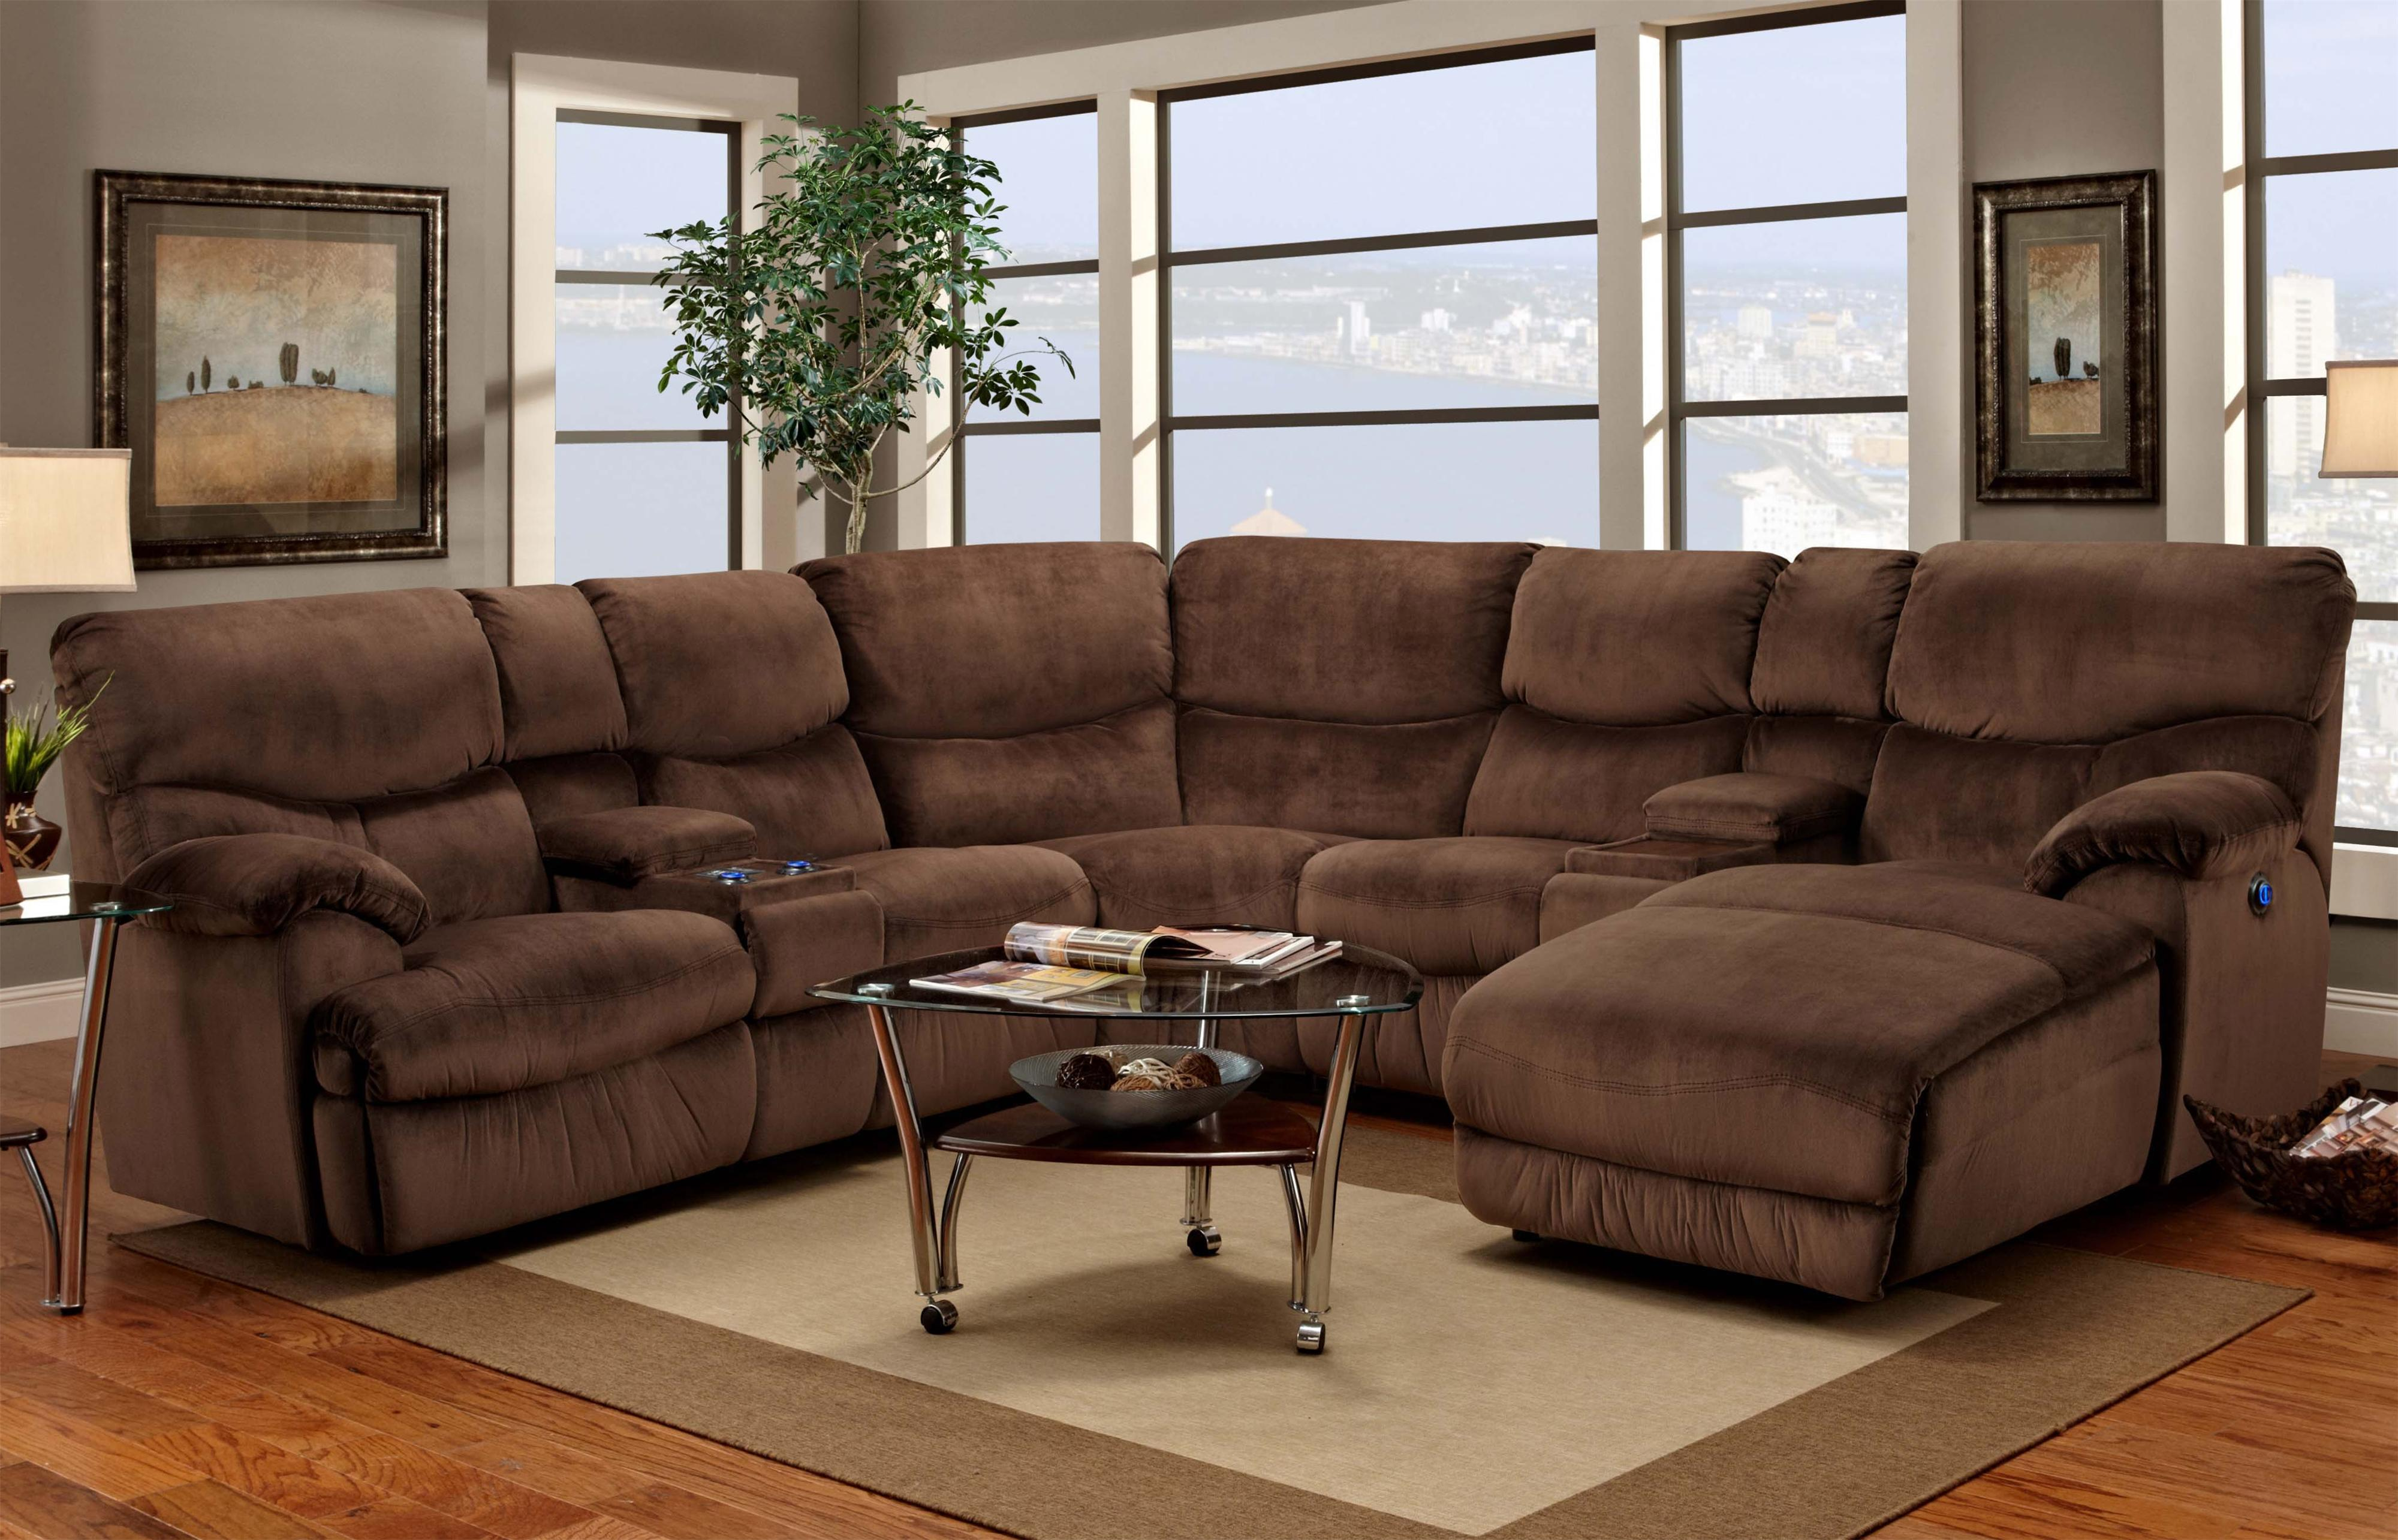 Franklin 597 Powered Reclining Sectional Sofa with Right-Side Chaise